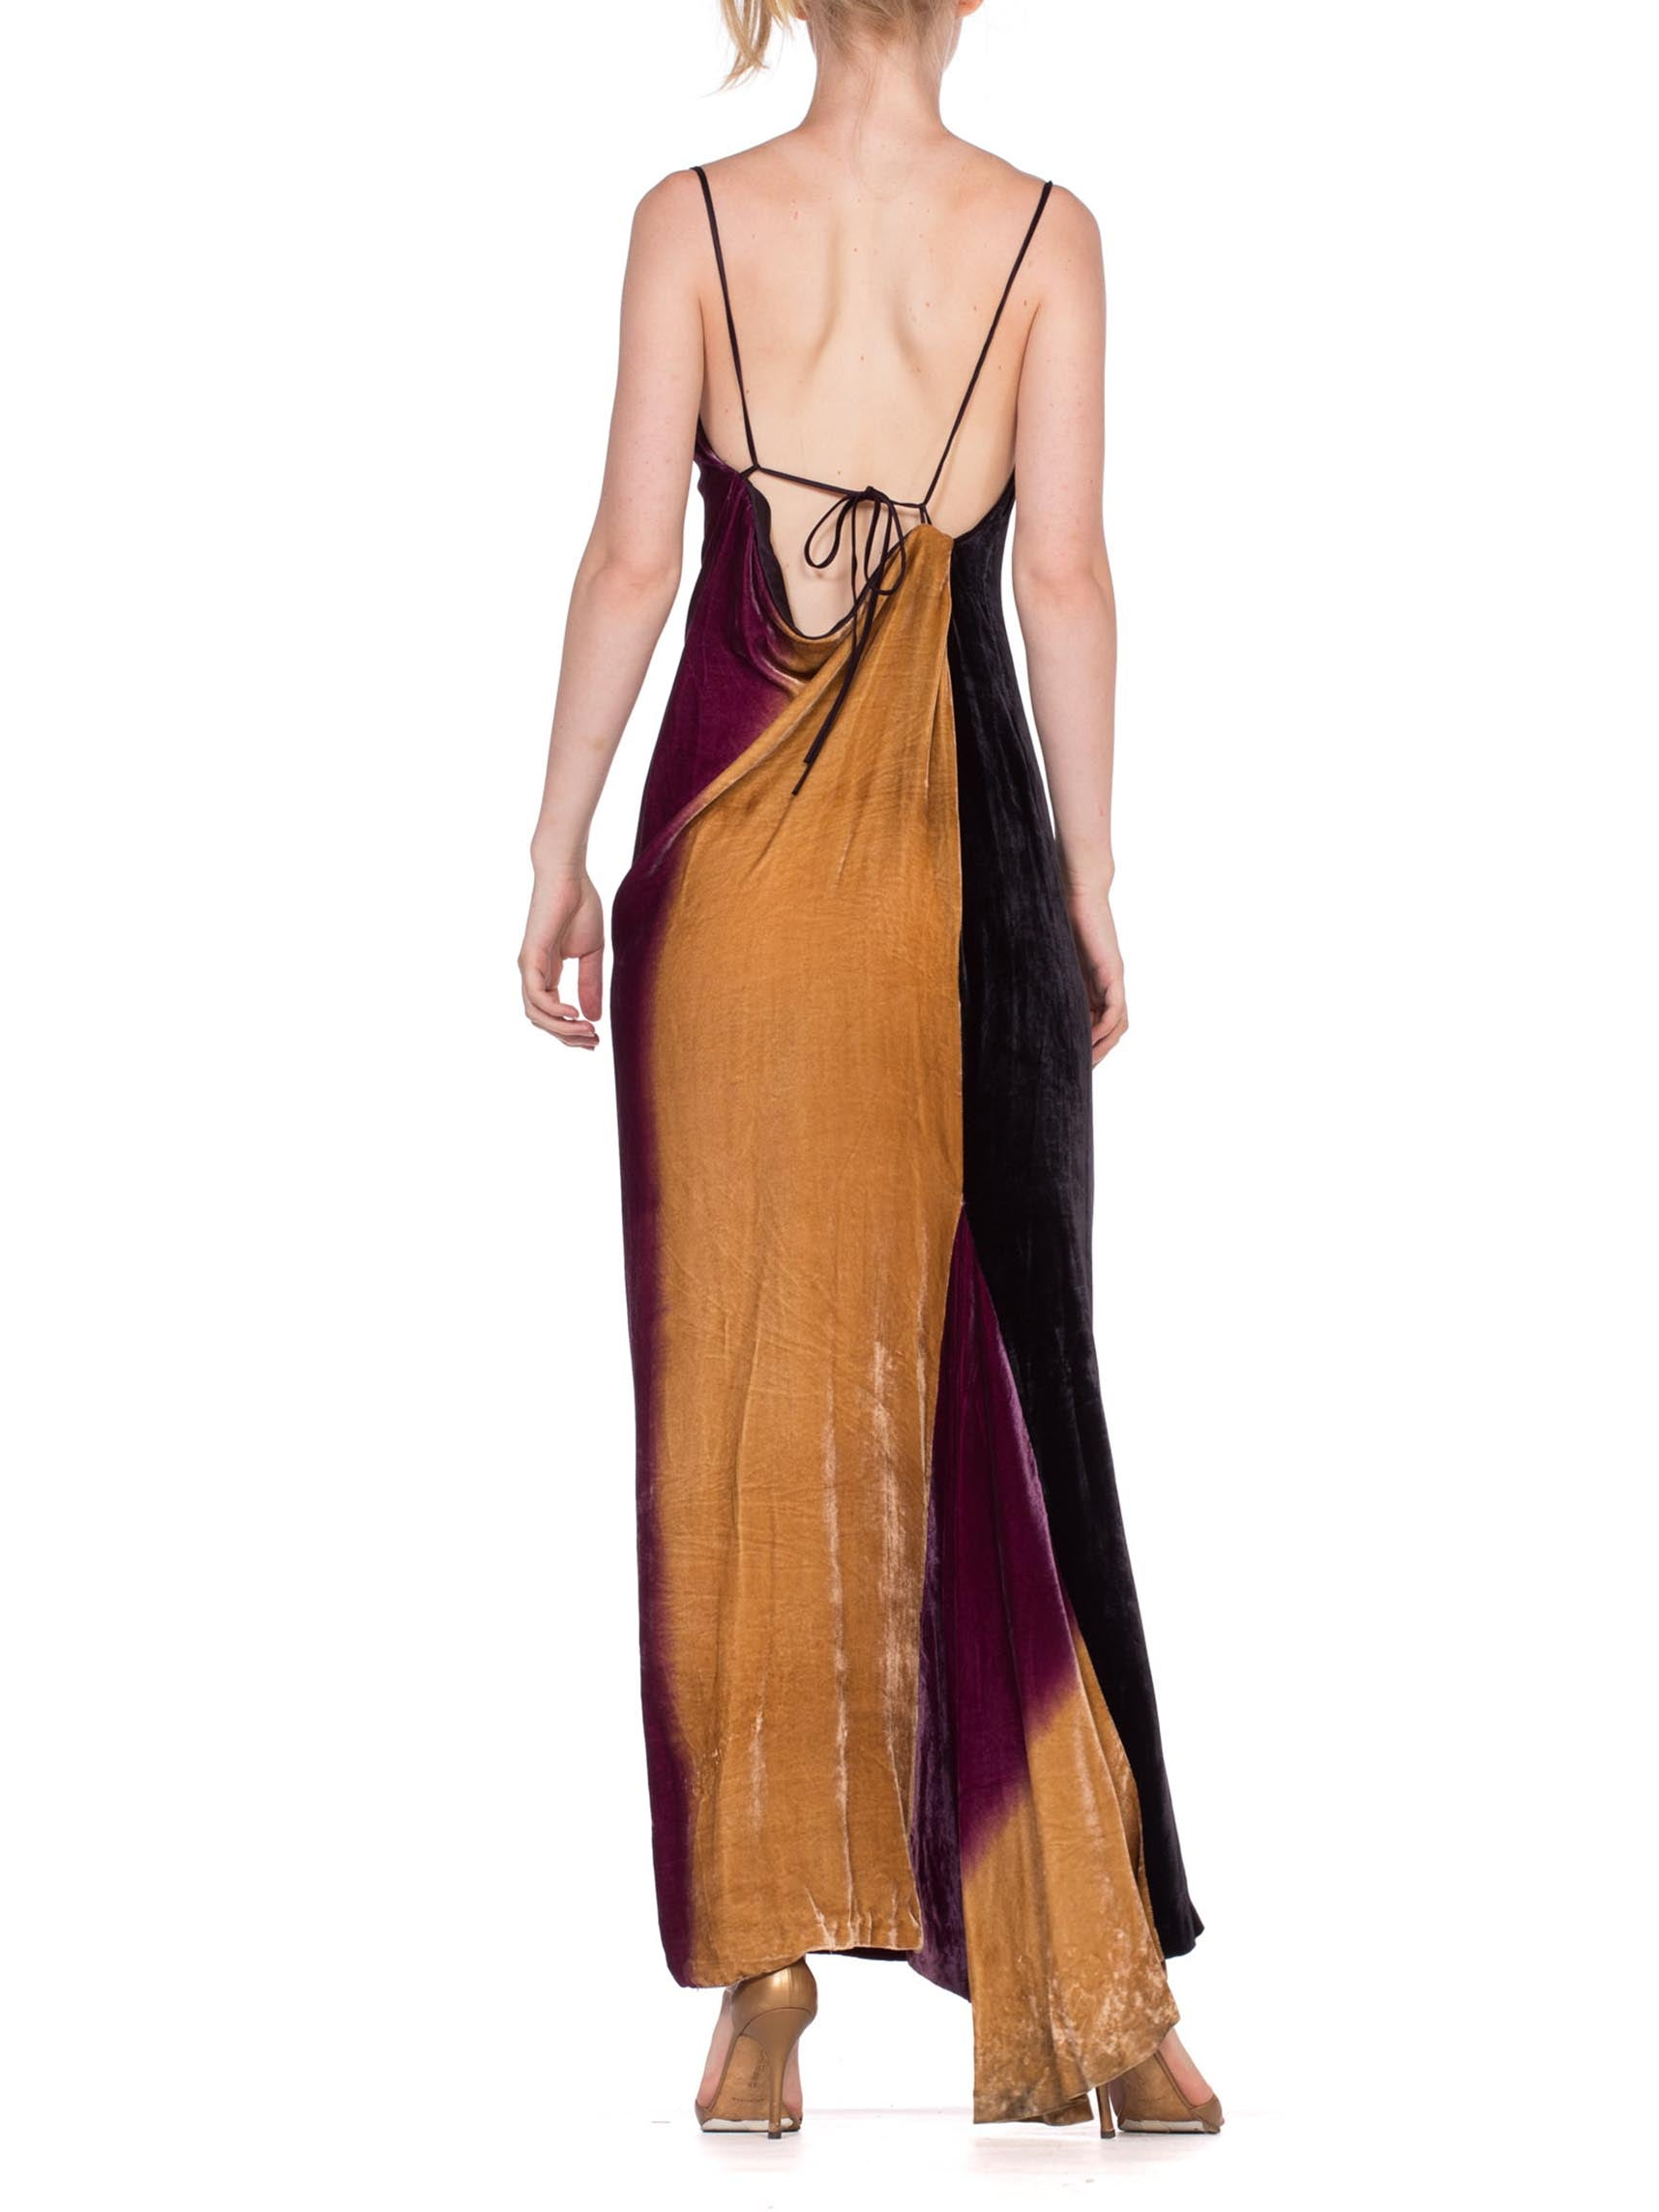 1990's Ombré Tie Dye Silk Rayon Velvet Bias Cut Backless Gown